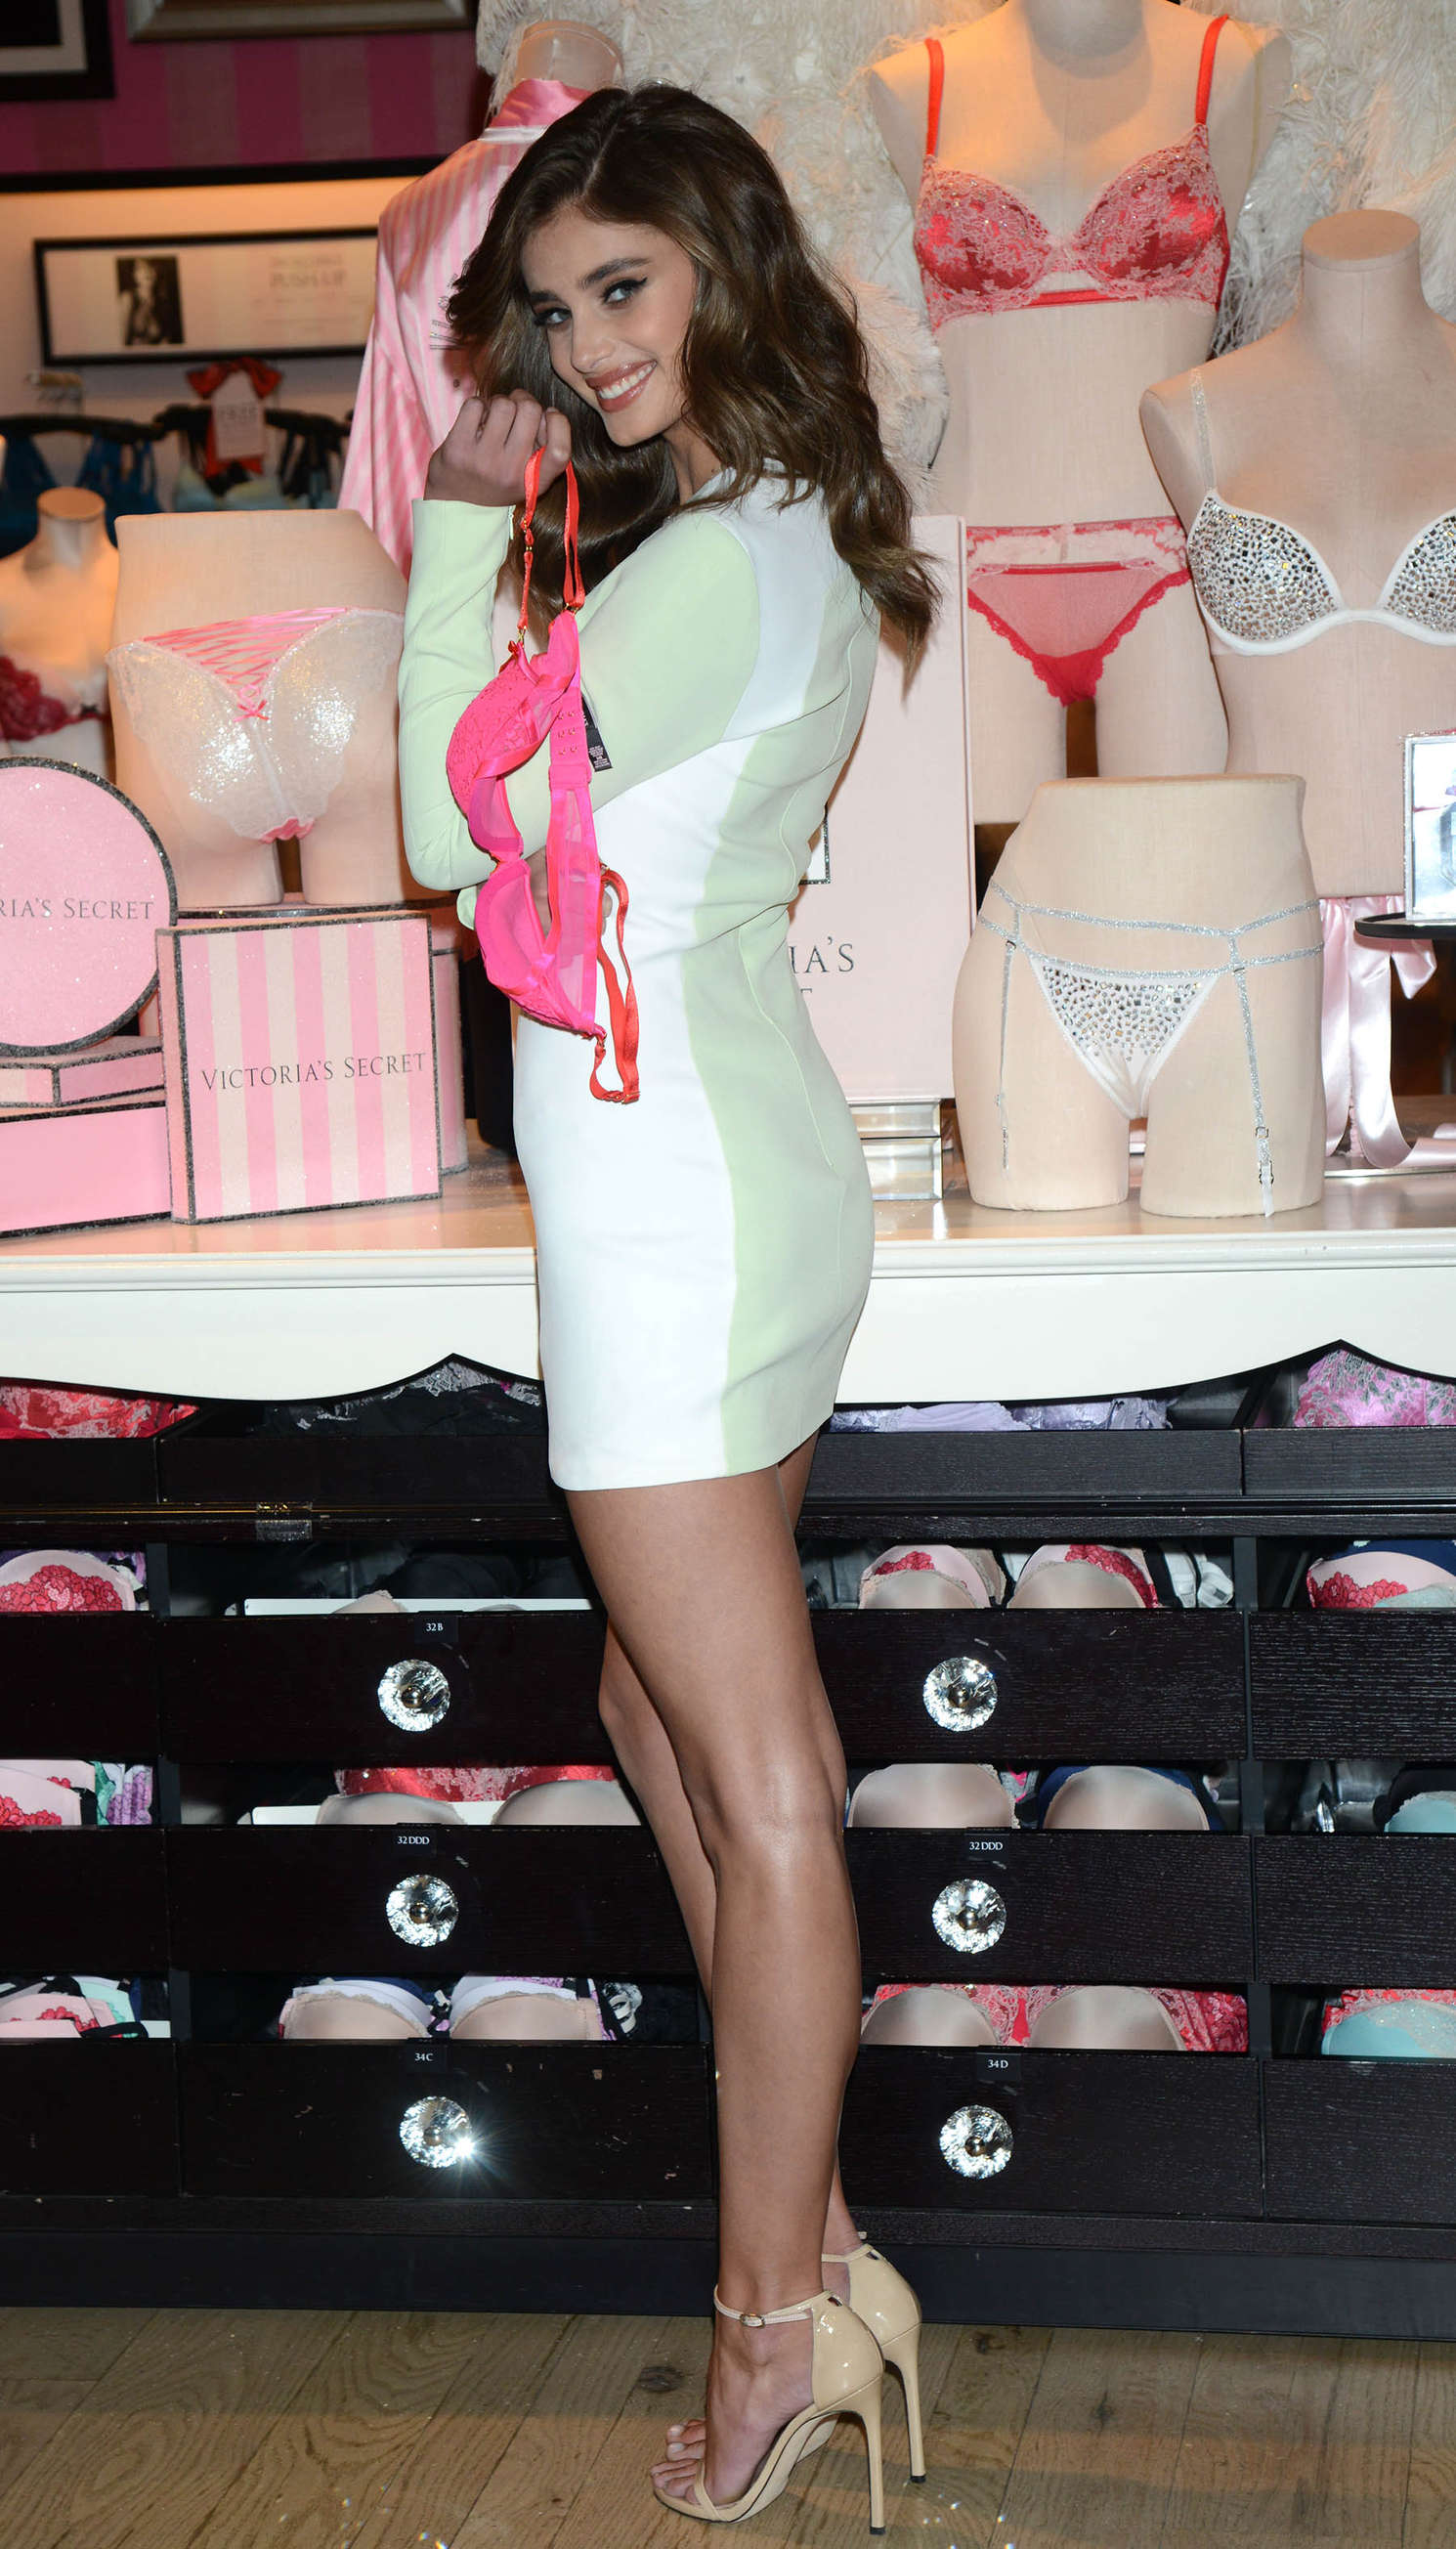 Taylor Hill 2015 : Taylor Hill: Revealing Runway Looks at Victorias Secret -10